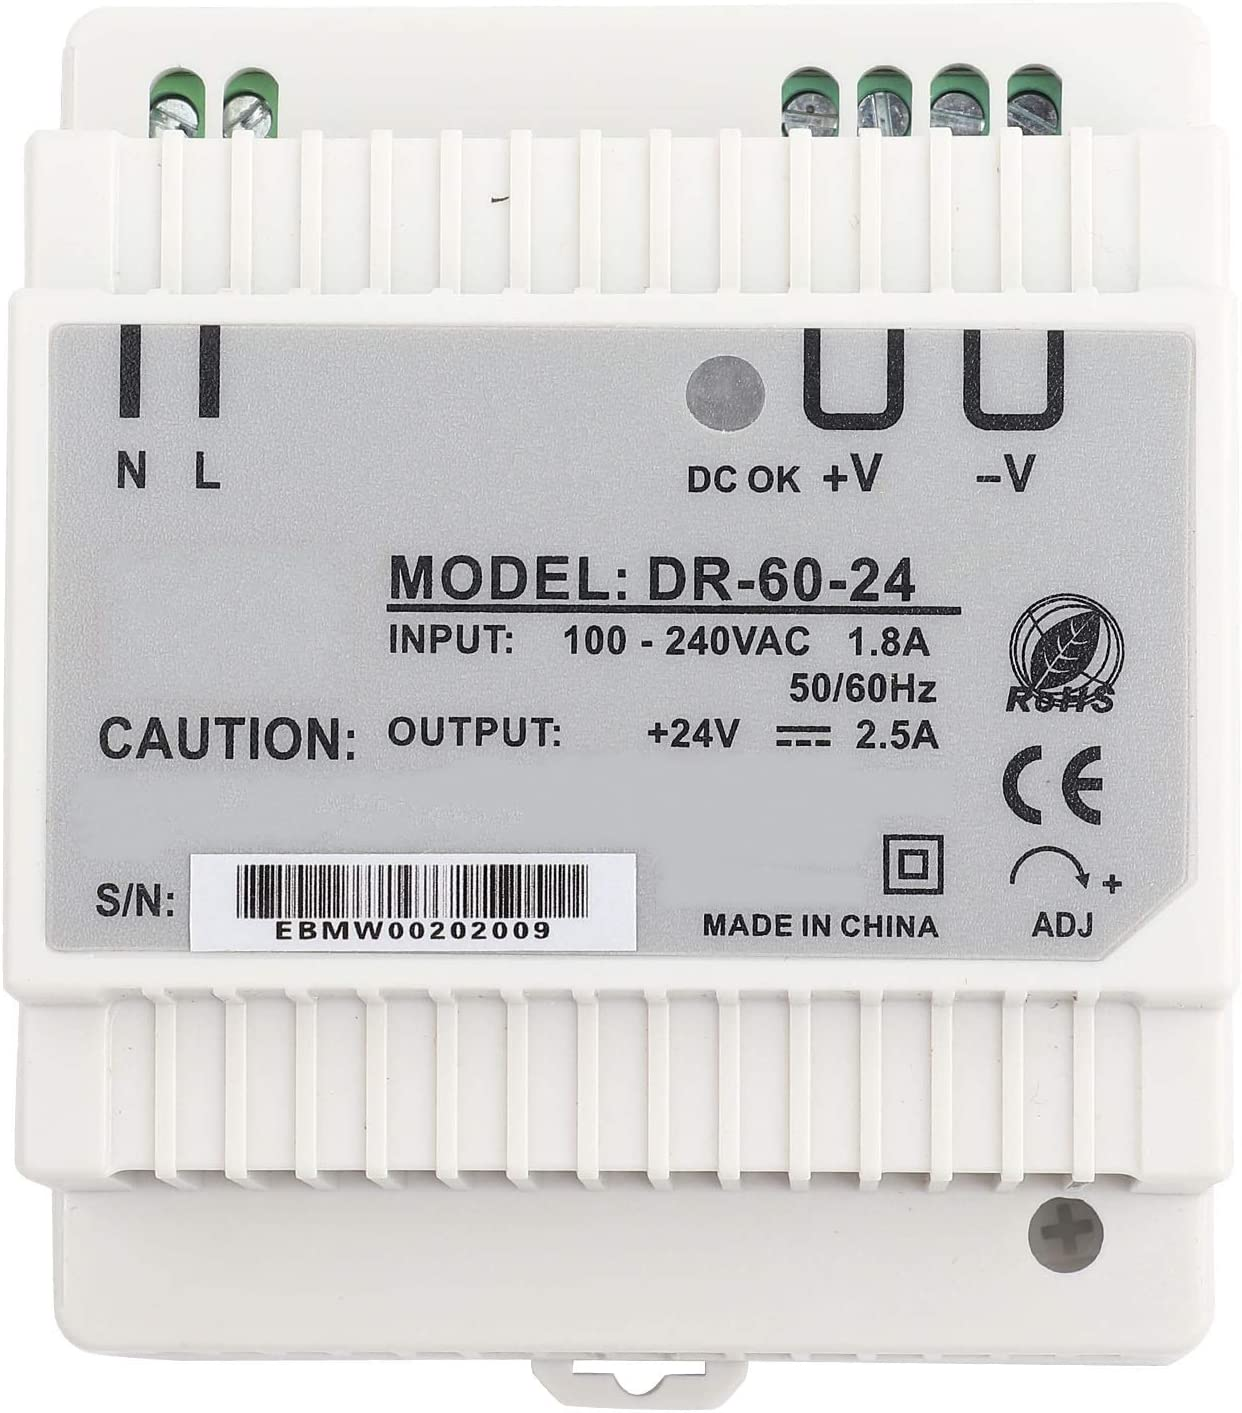 QiruIXinXi Din-Rail Power Supply, DR-60-24 Single Output Rail Mounting Power Supply, for LED Lighting, Industrial Control, Instrument, Textile, Car